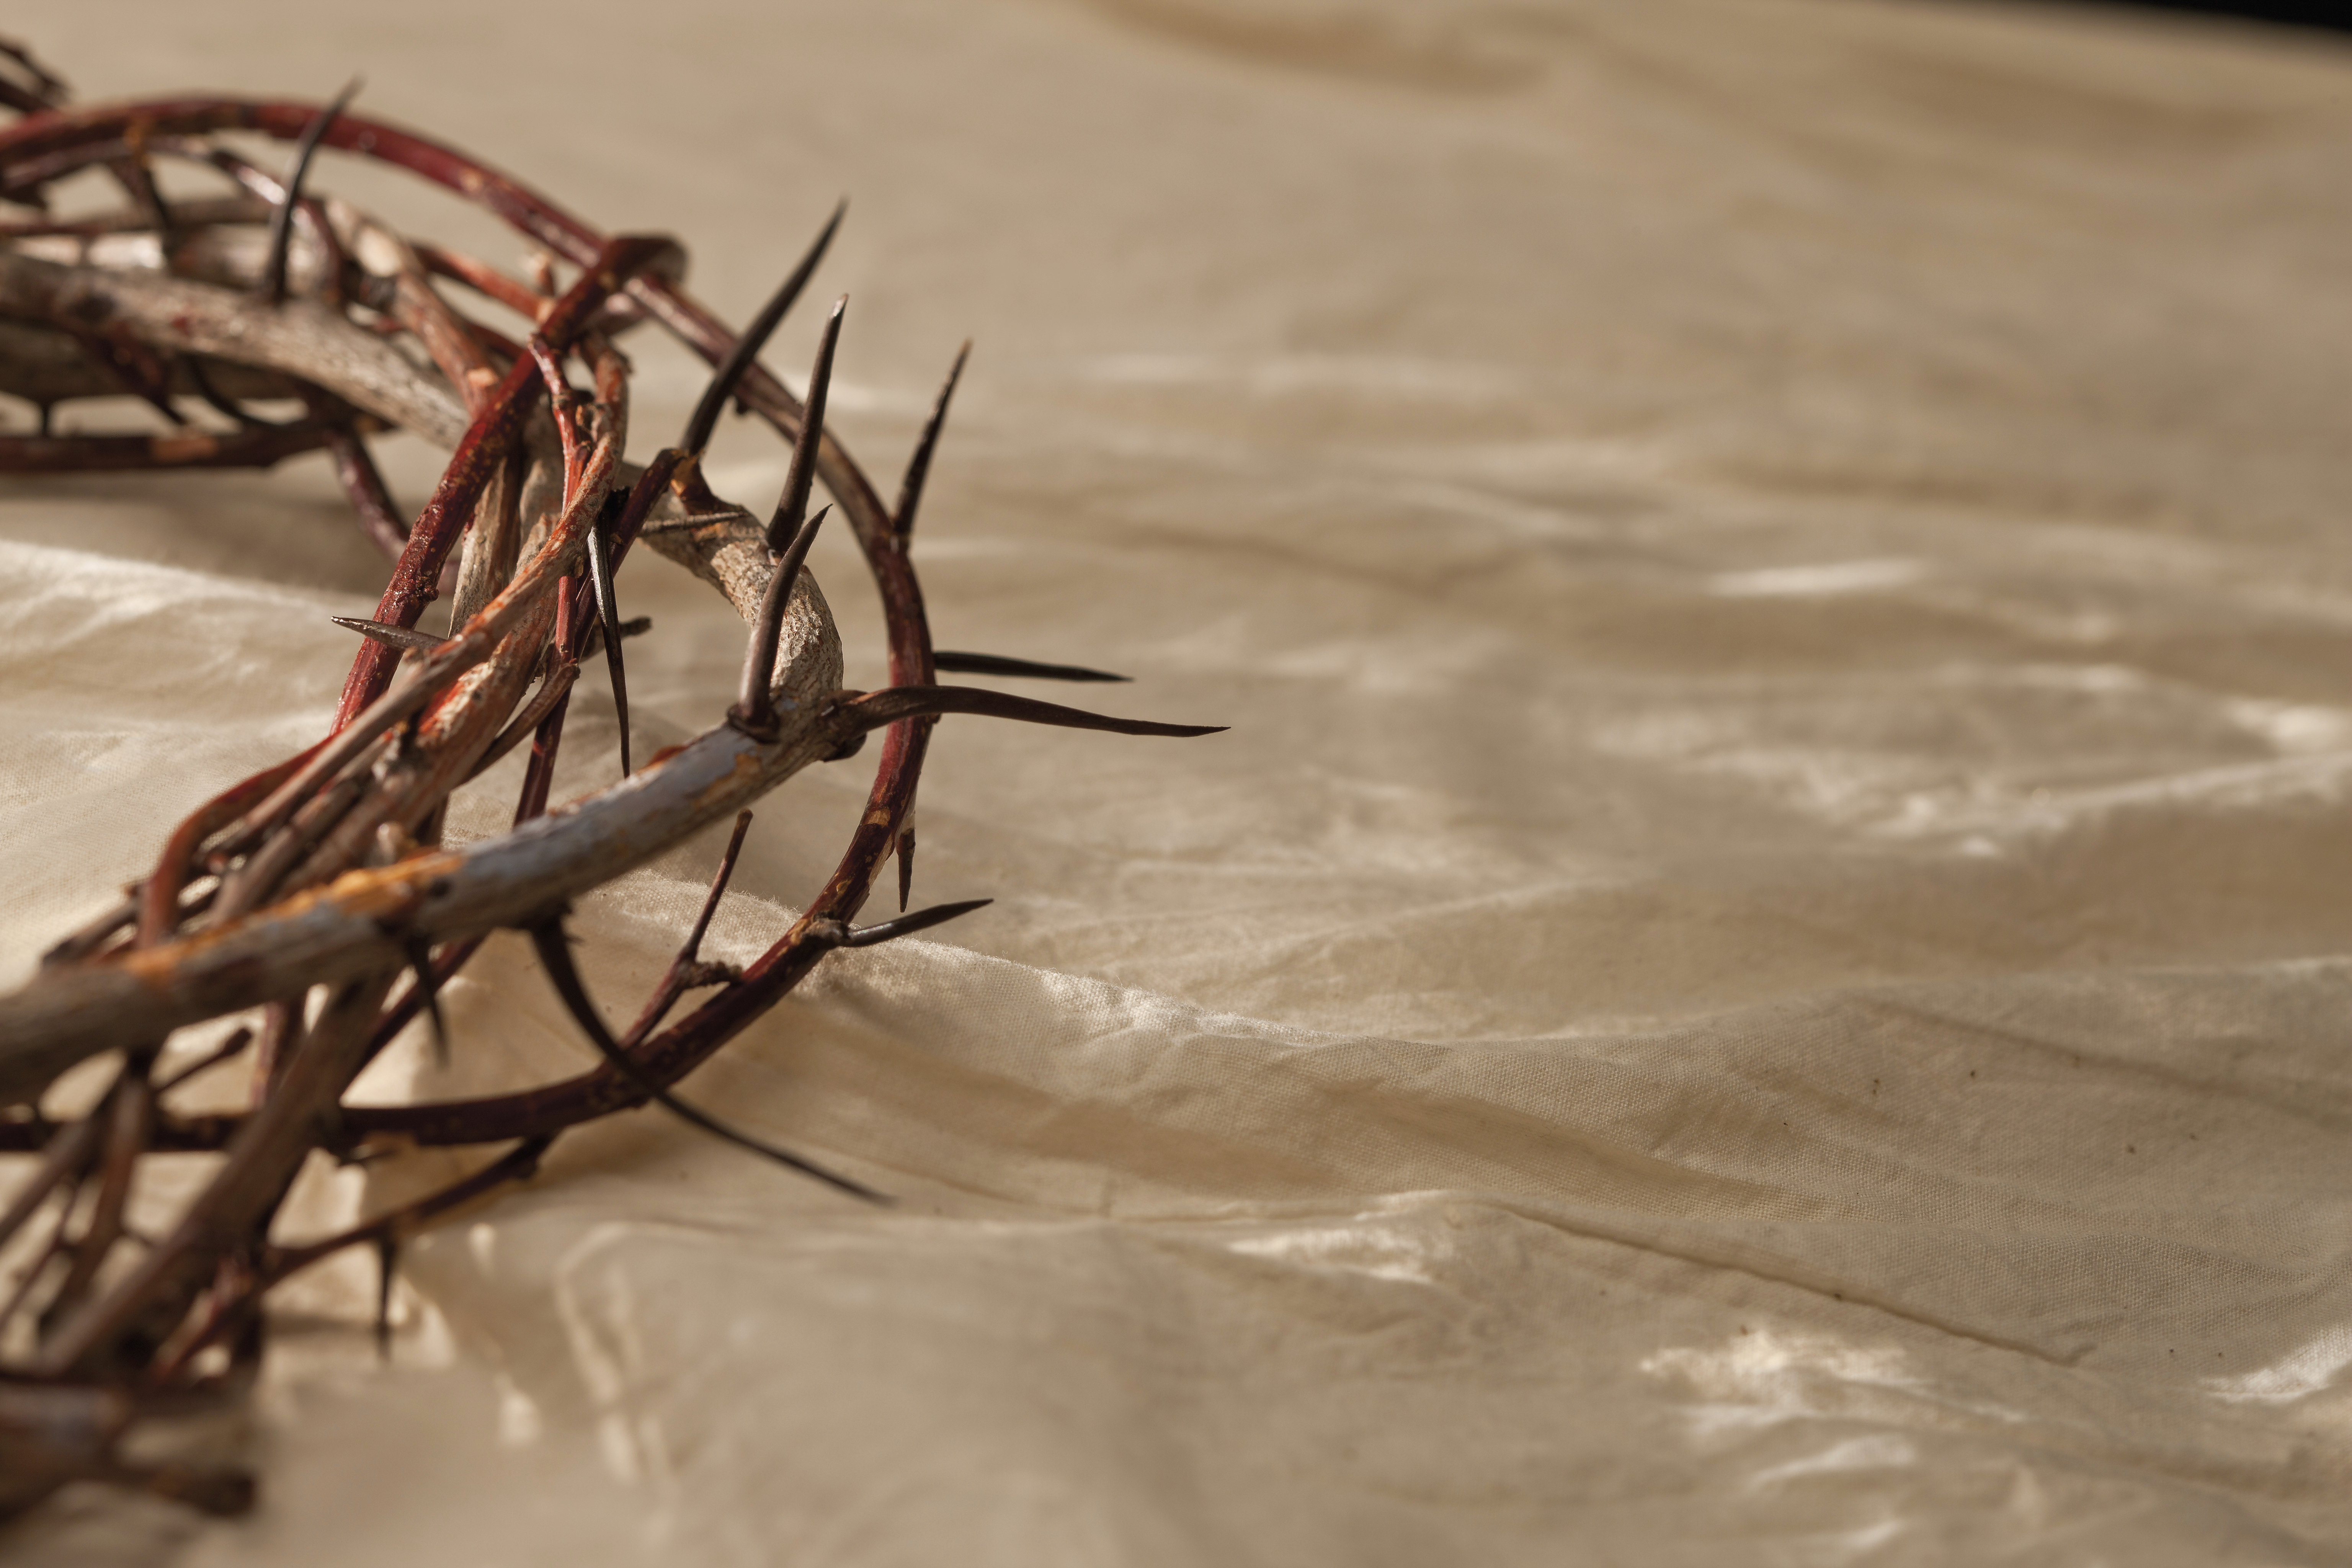 A crown of thorns resting on a piece of white linen.